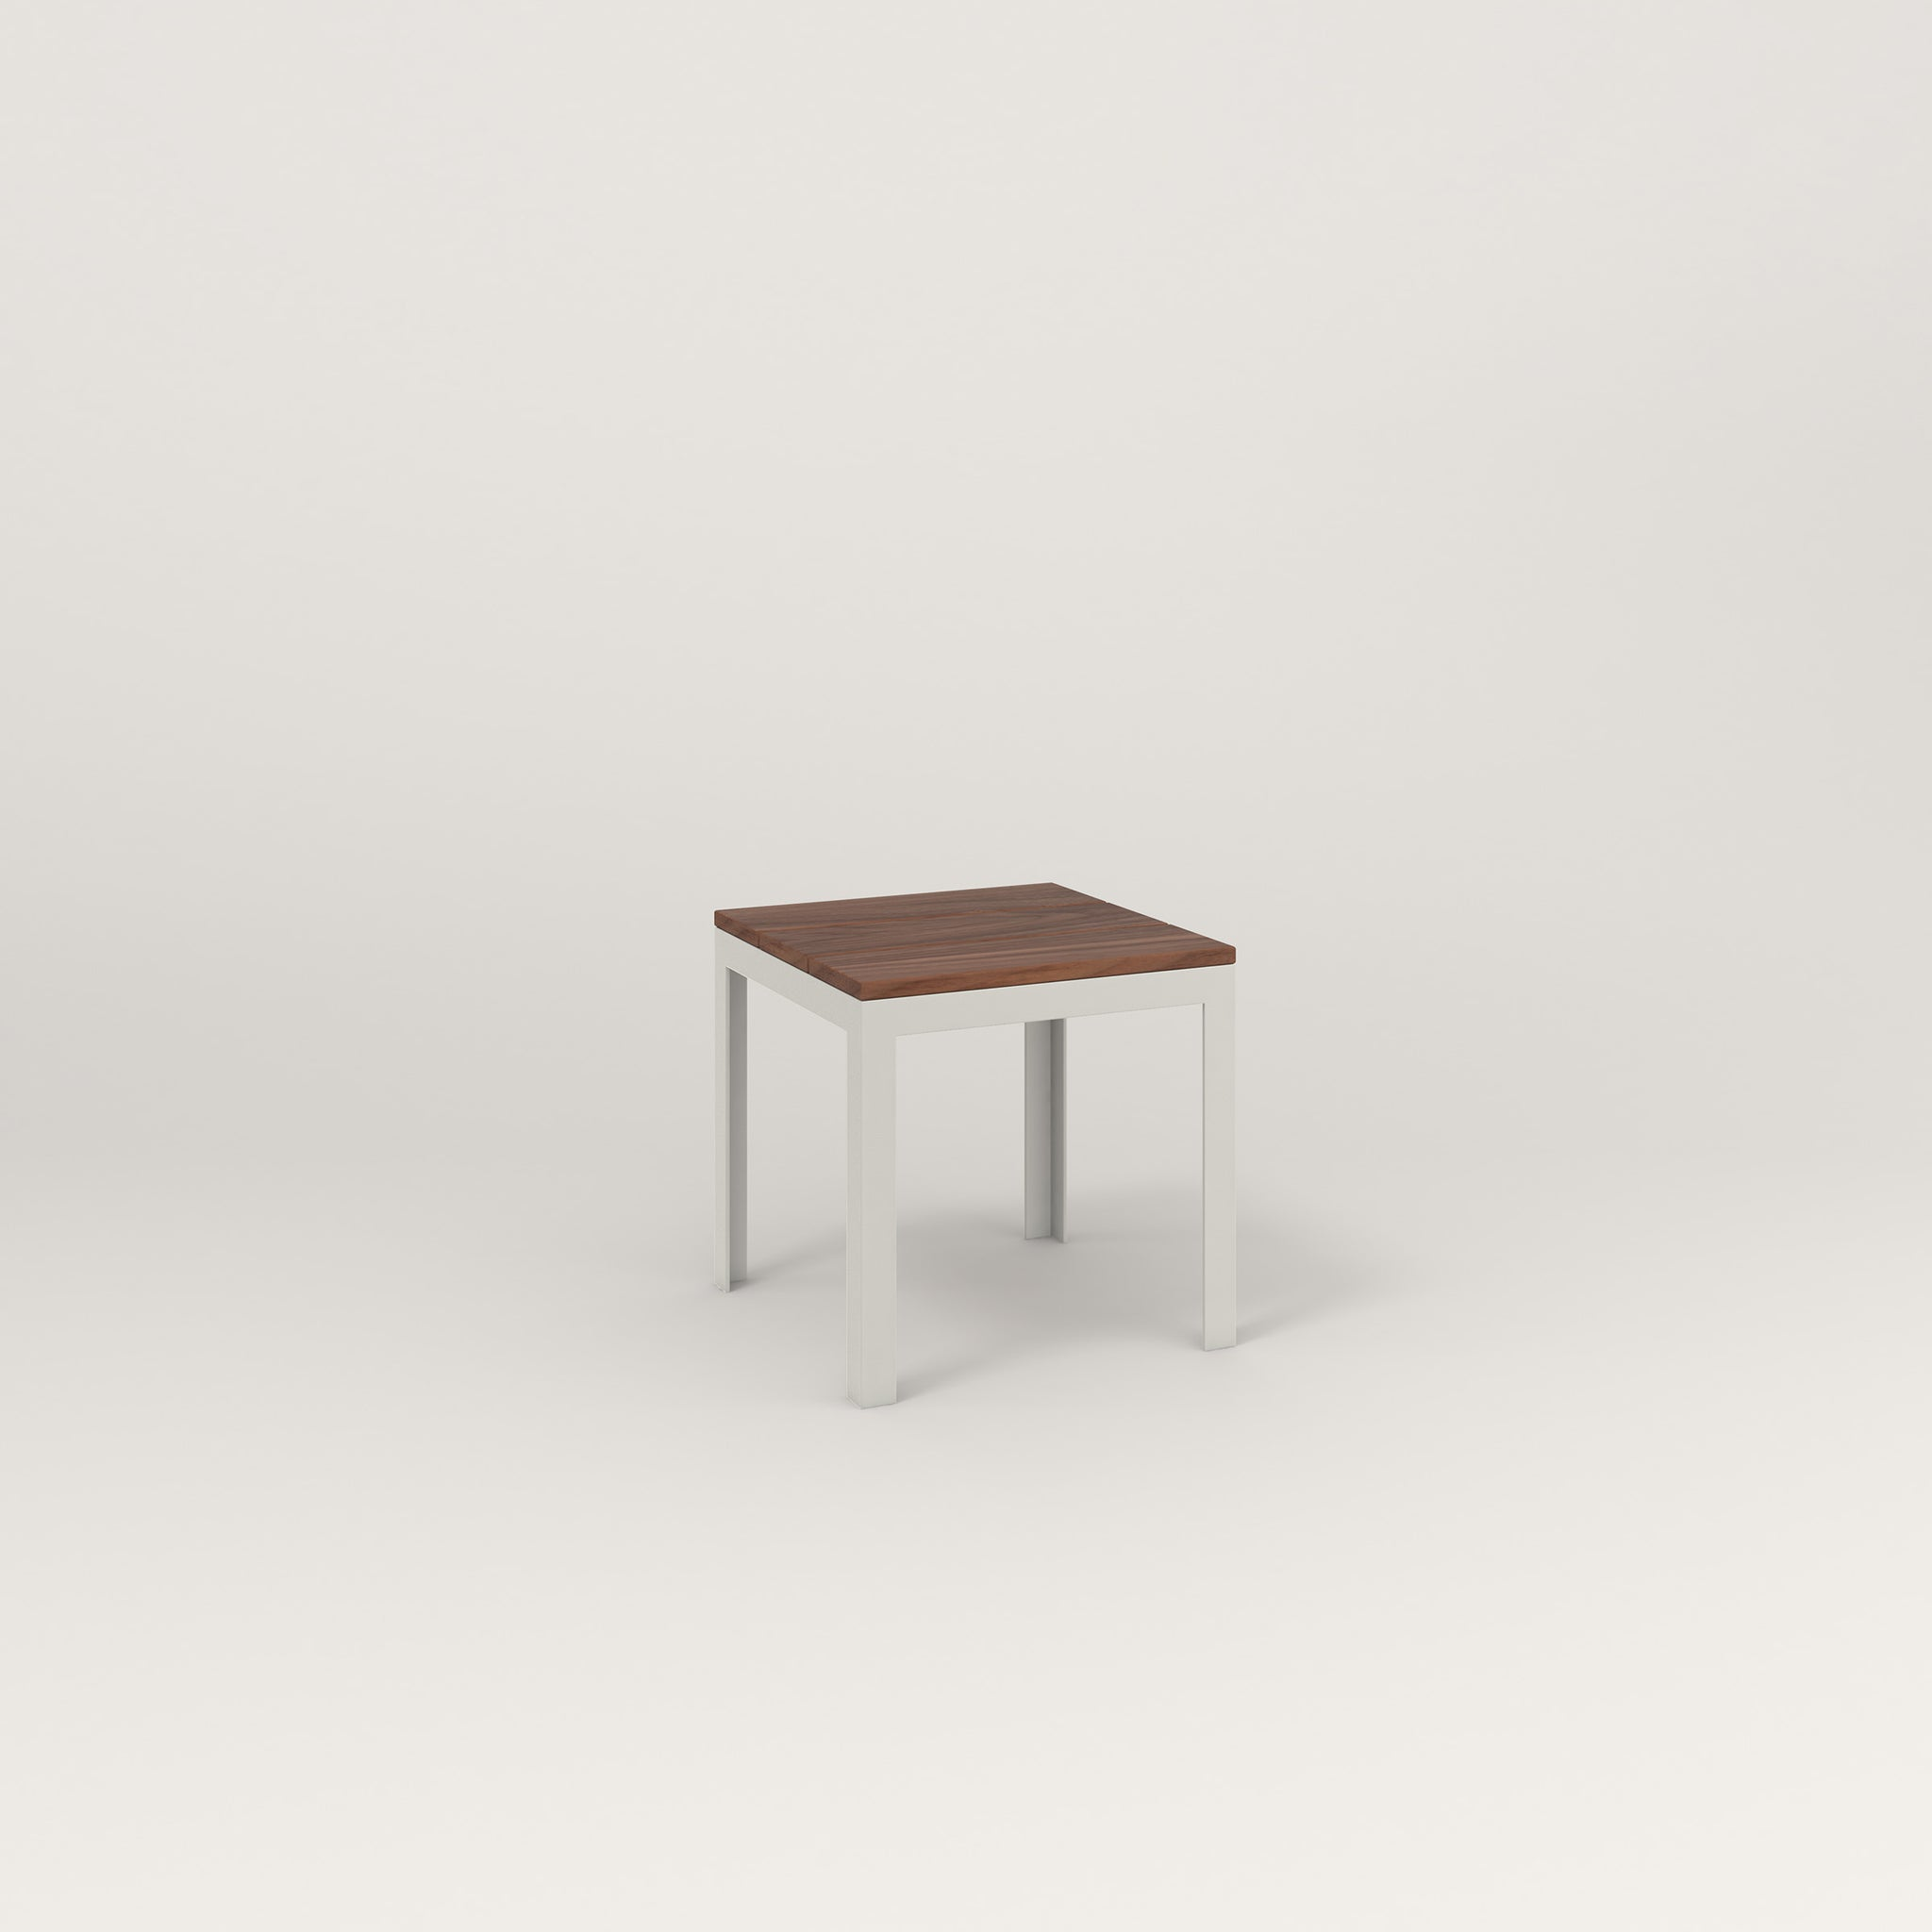 RAD Signature Simple Stool in slatted wood and white powder coat.